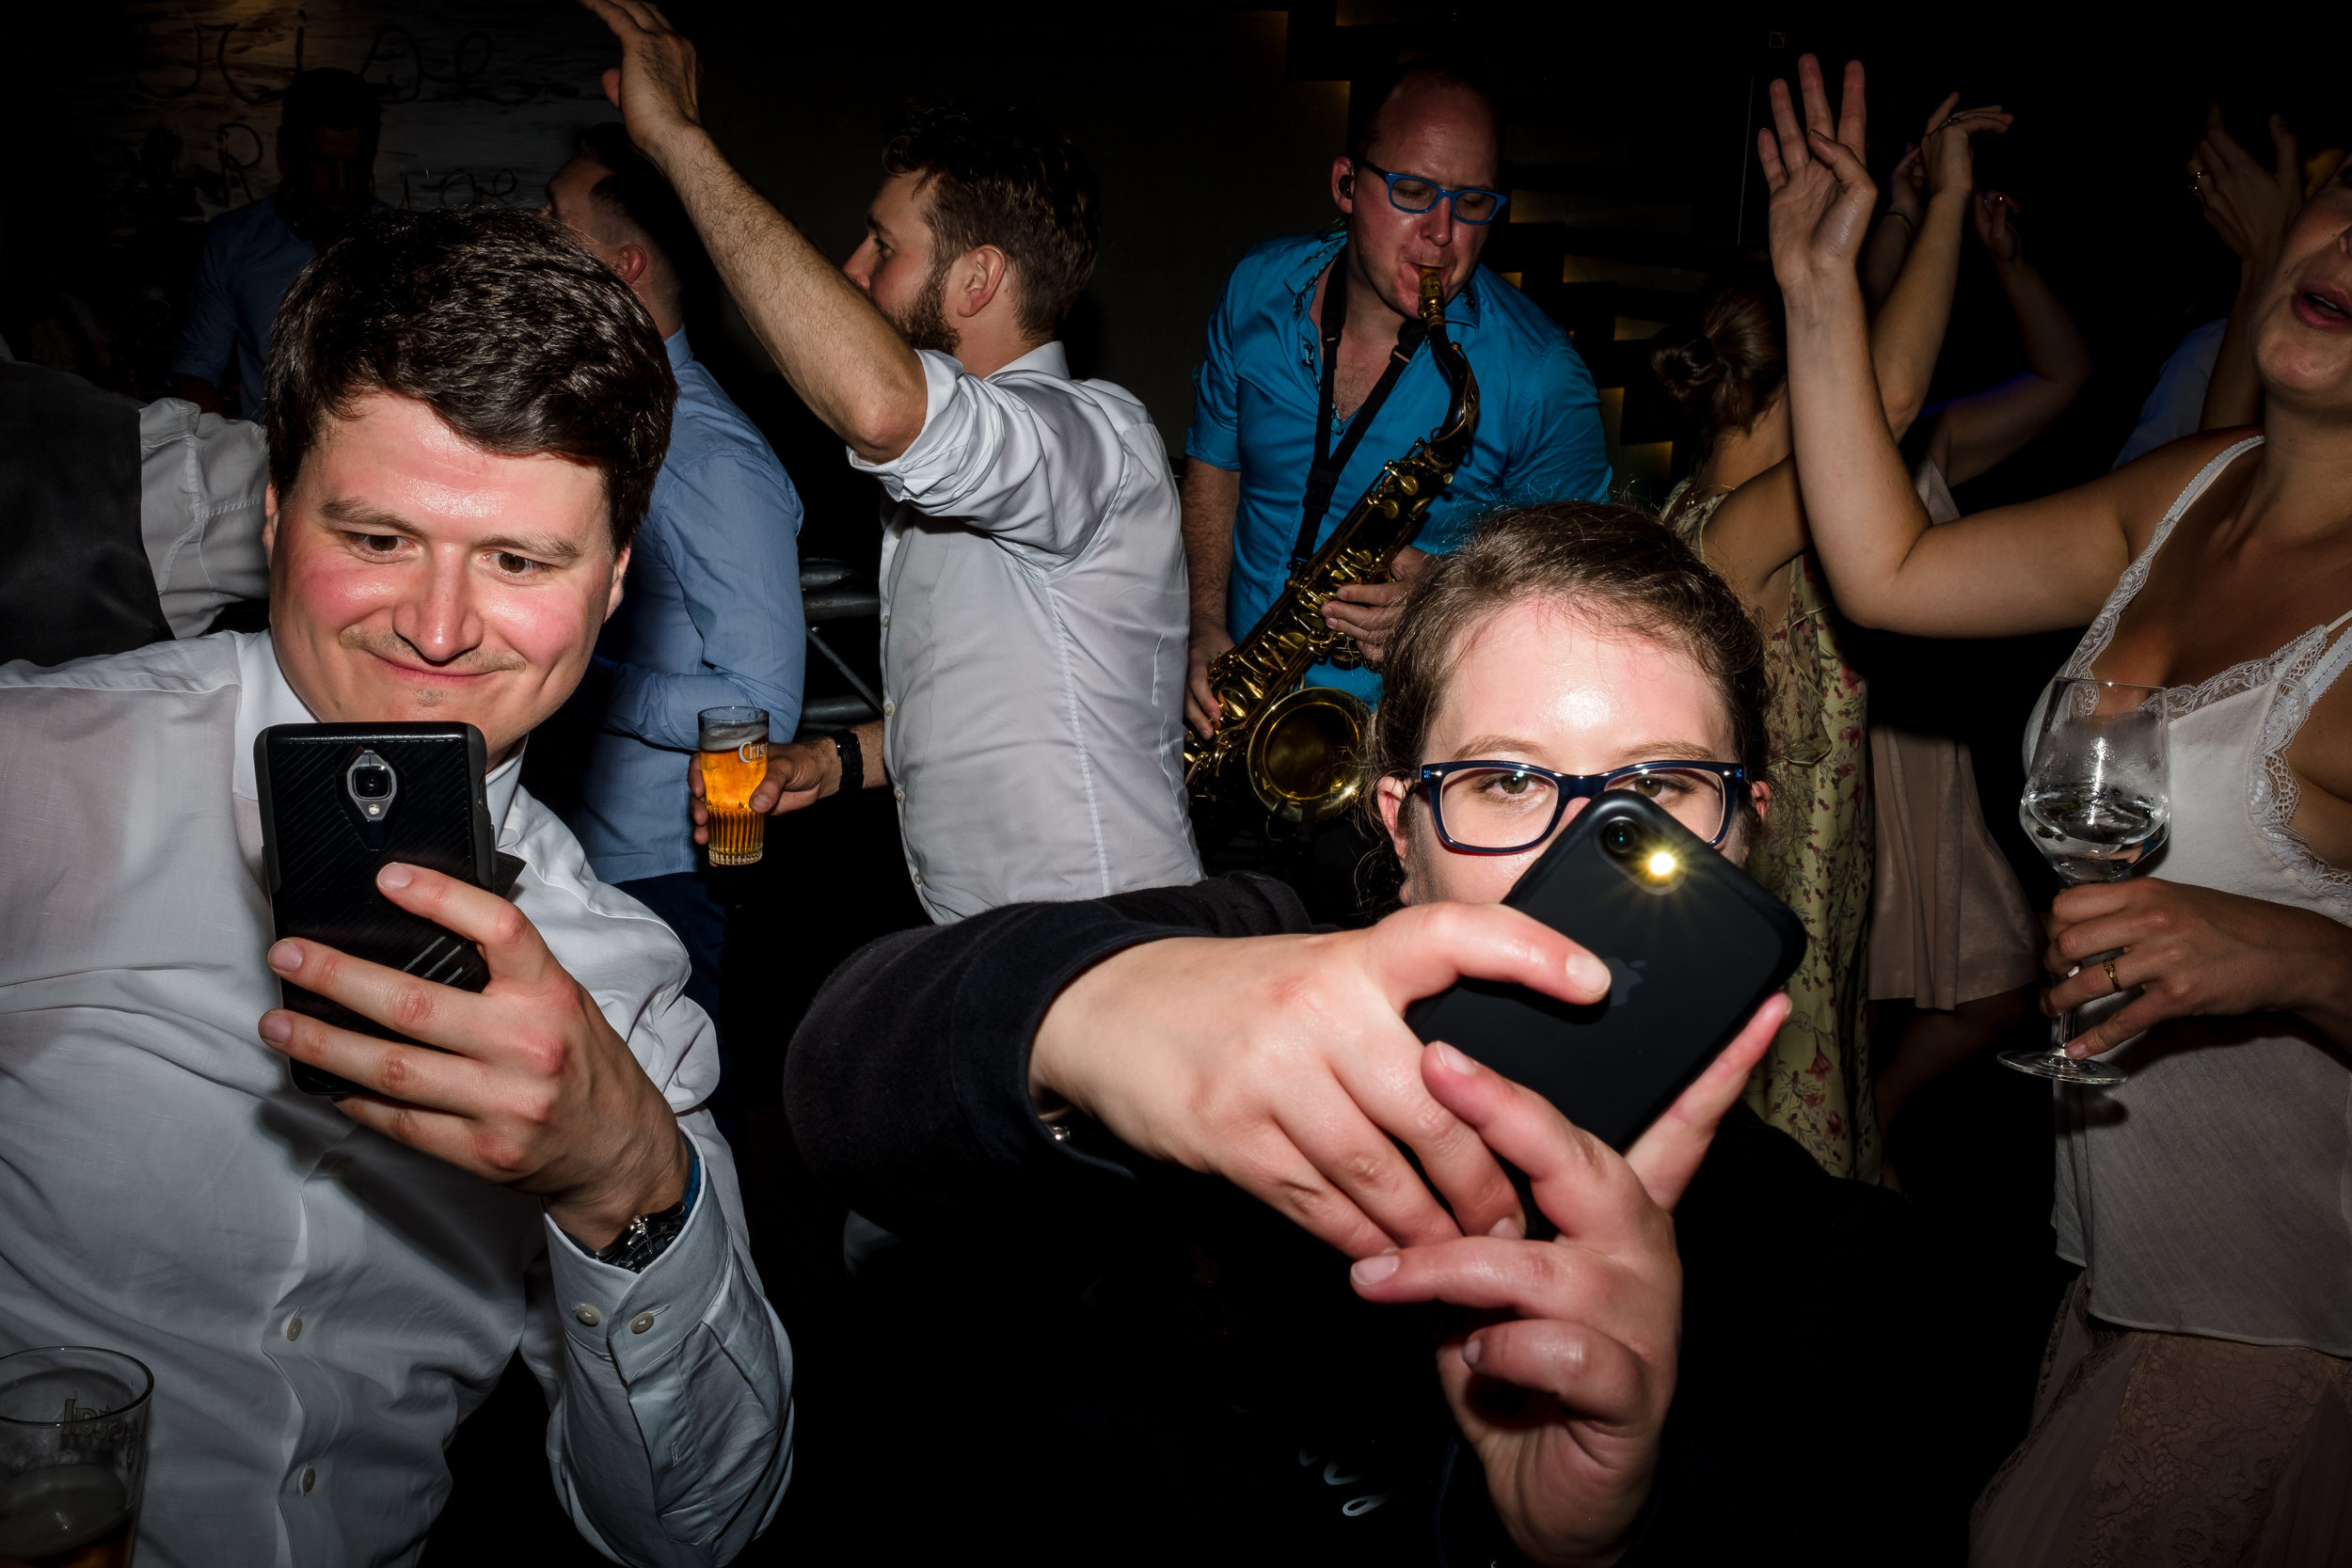 people at party with phones